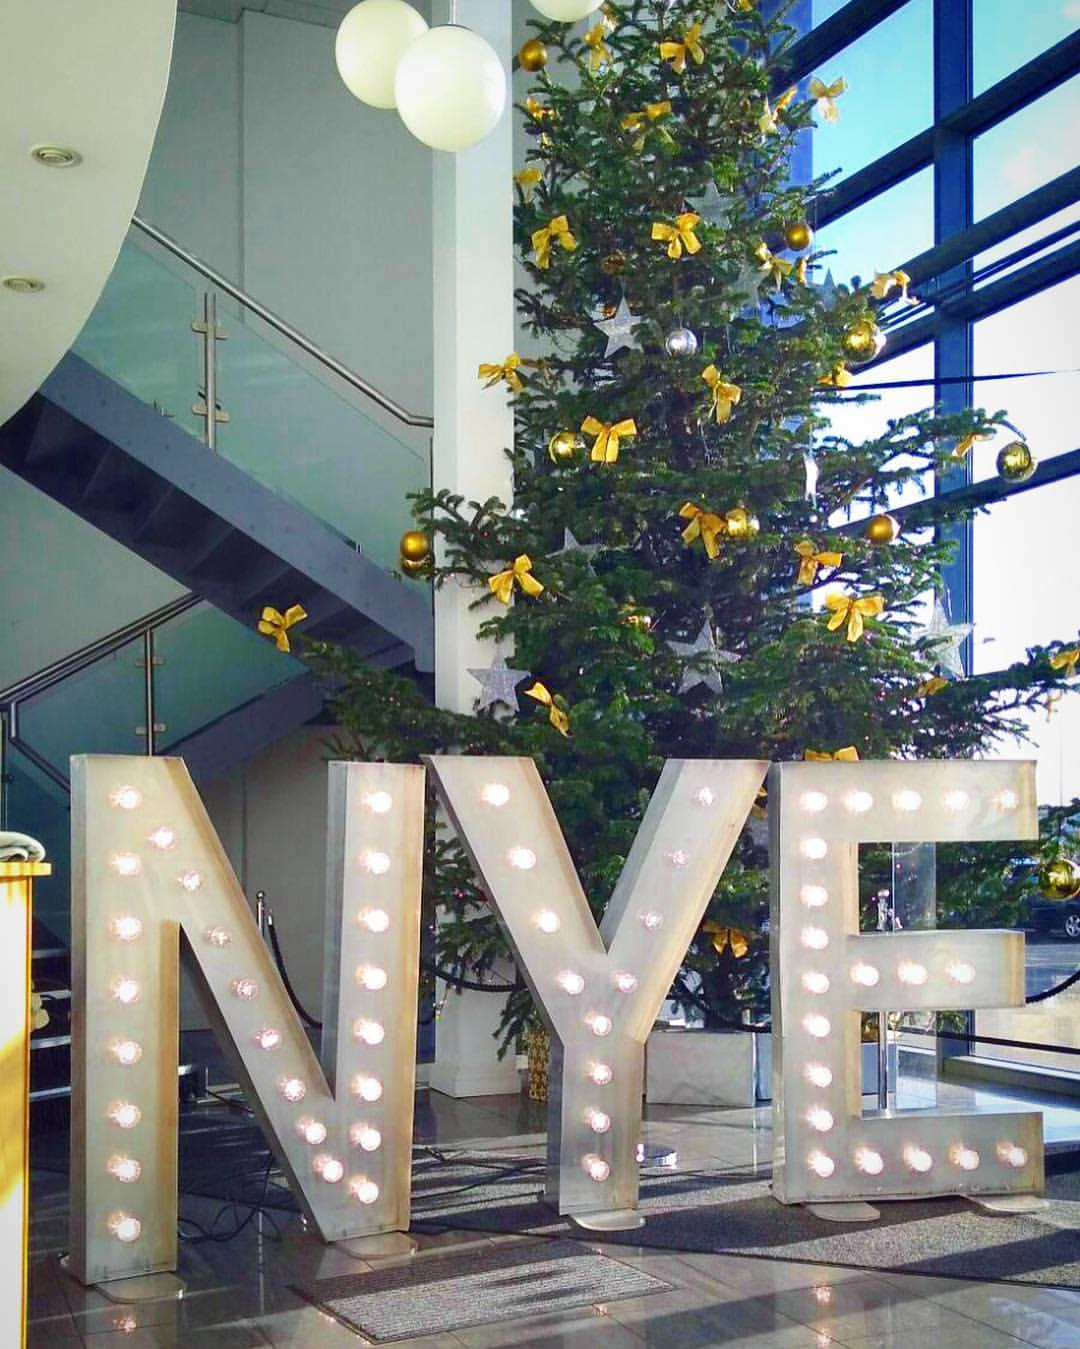 light up letter hire New Year's Eve Christmas